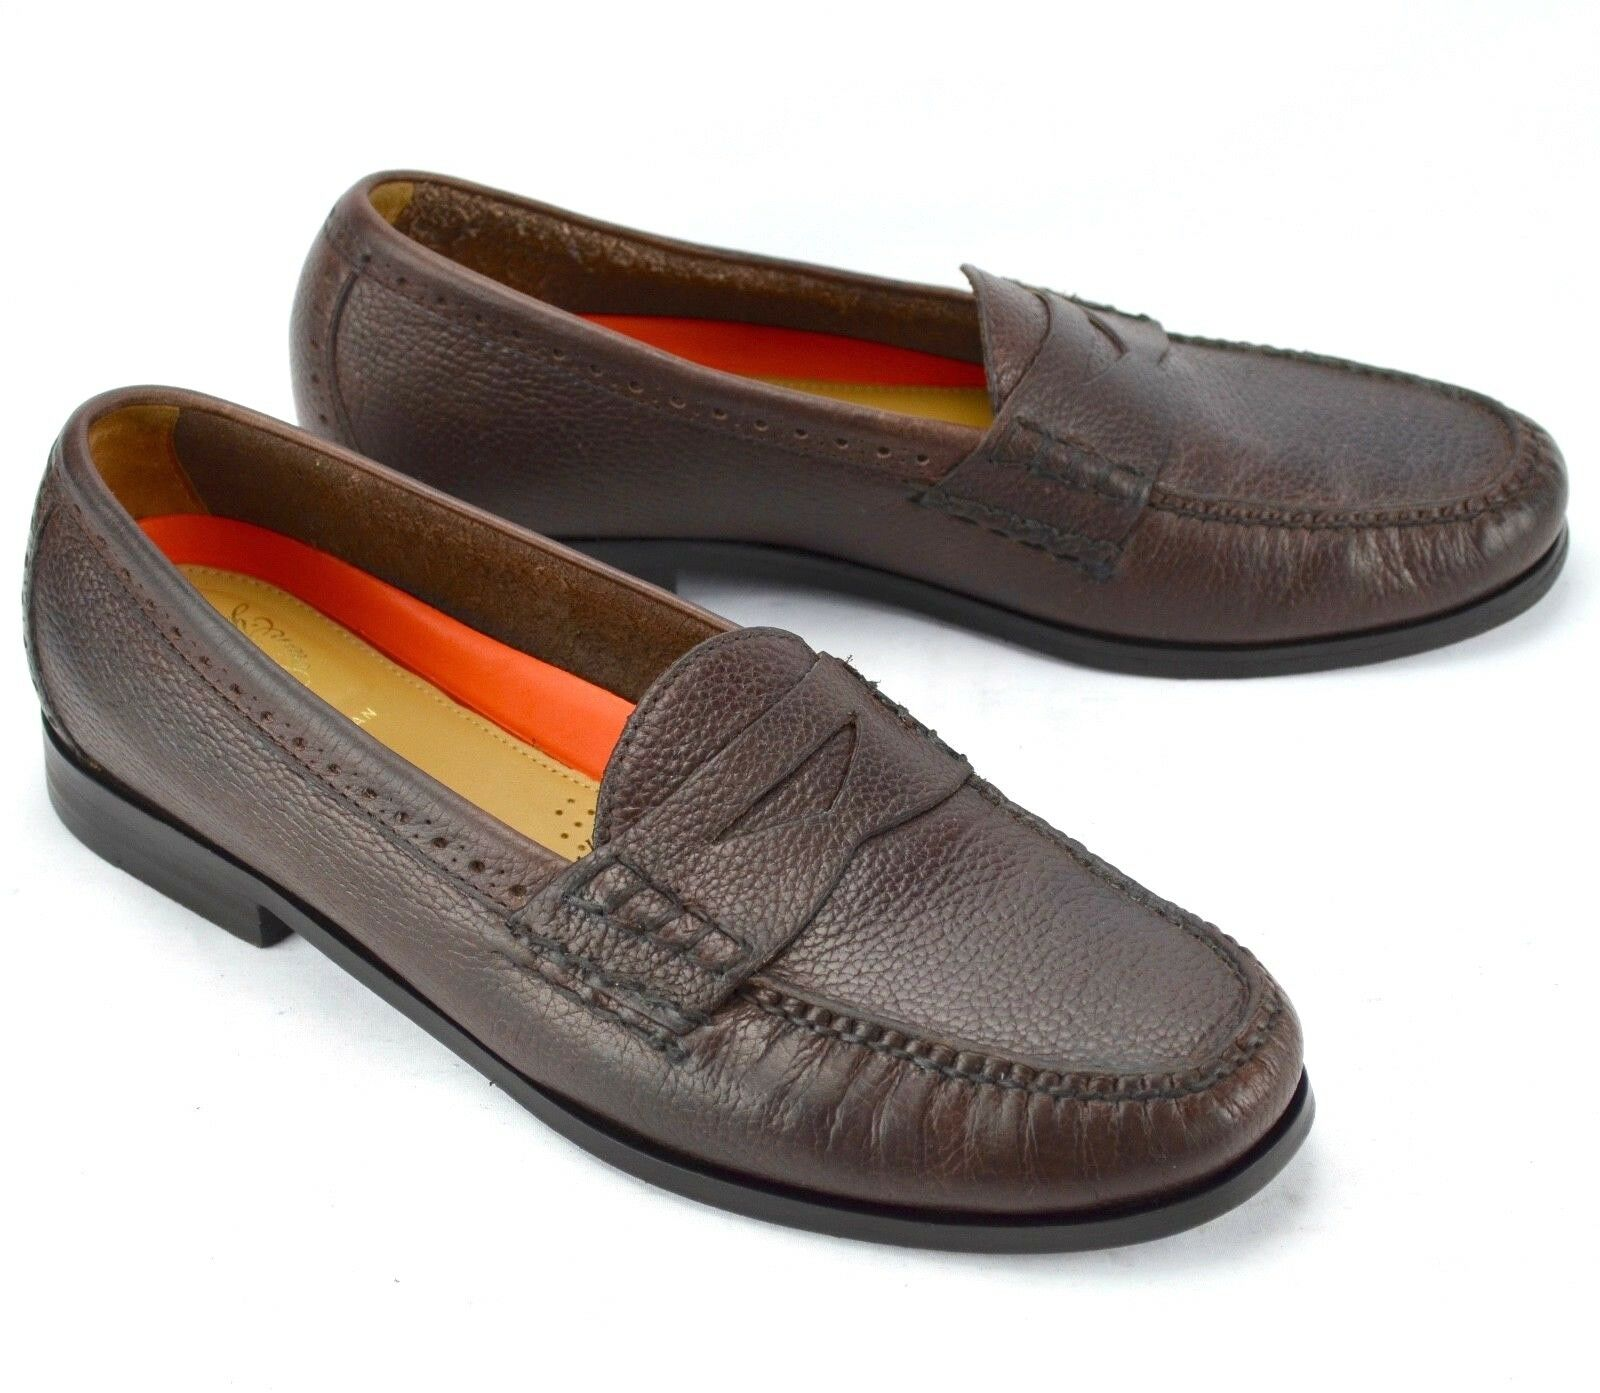 Cole Haan Uomo Hand Sewn Pinch Grand OS marrone Pelle Slip On Penny Loafers 11M